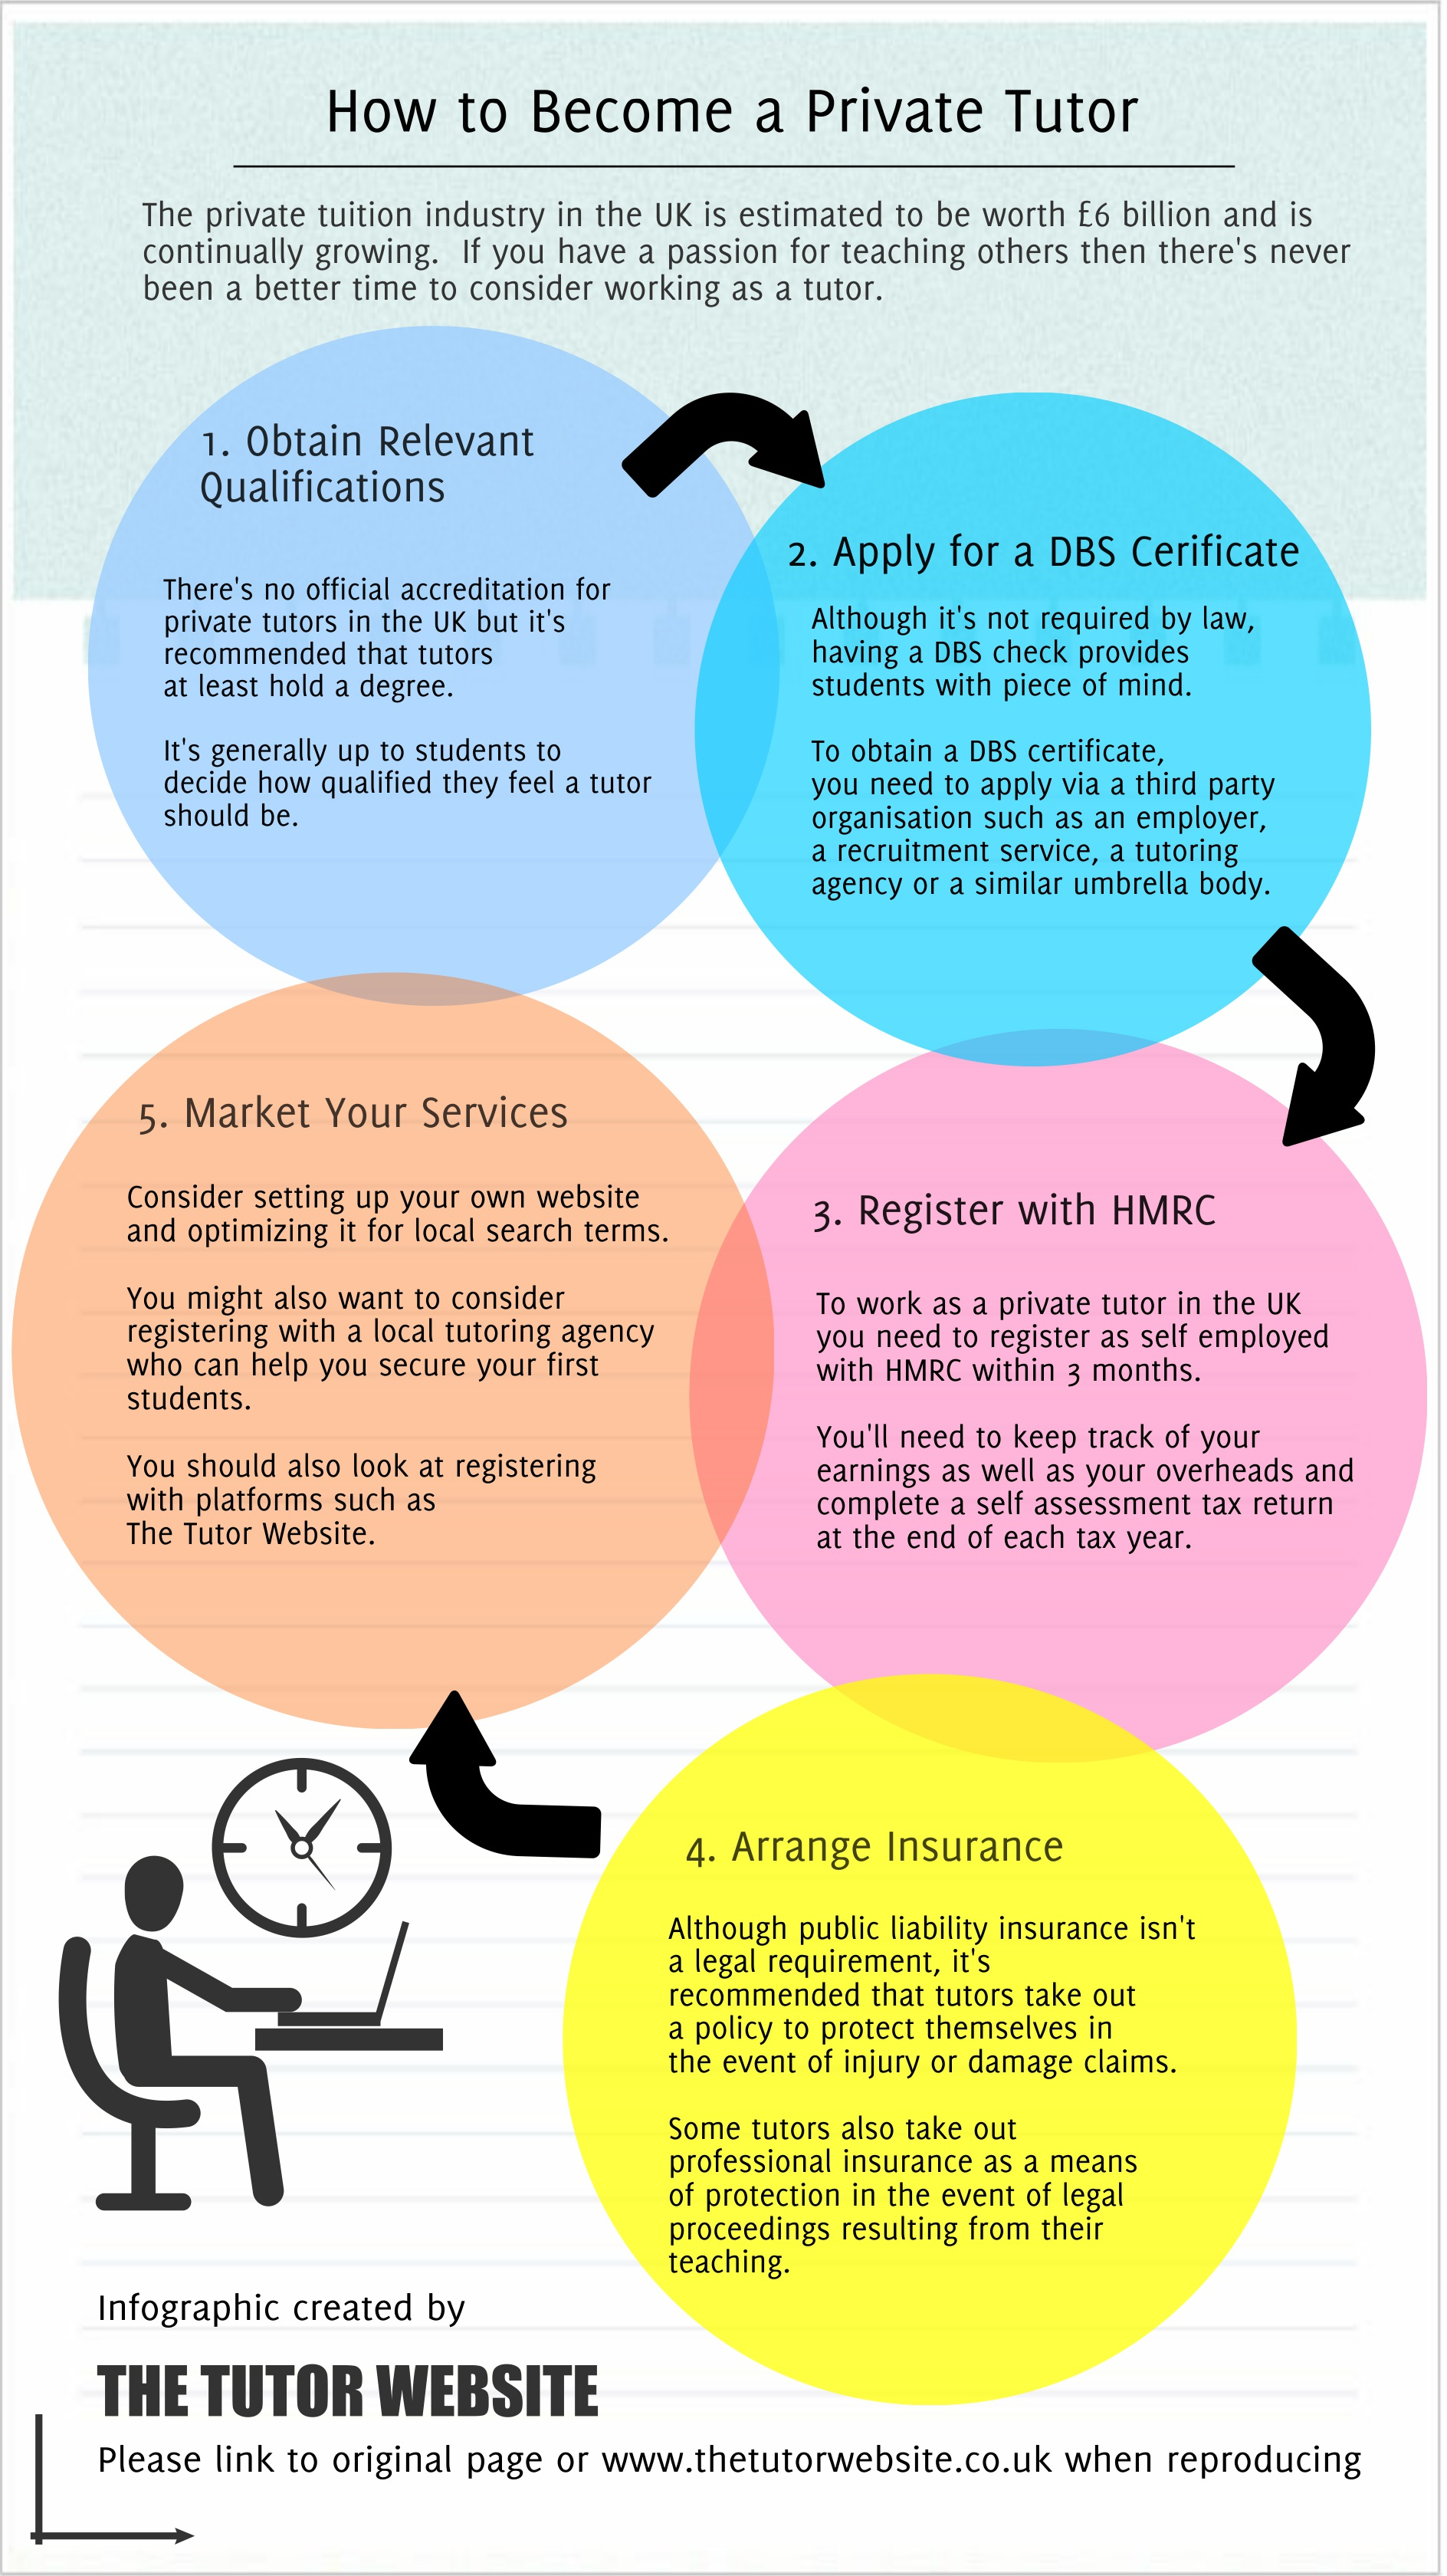 How to Become a Private Tutor Infographic